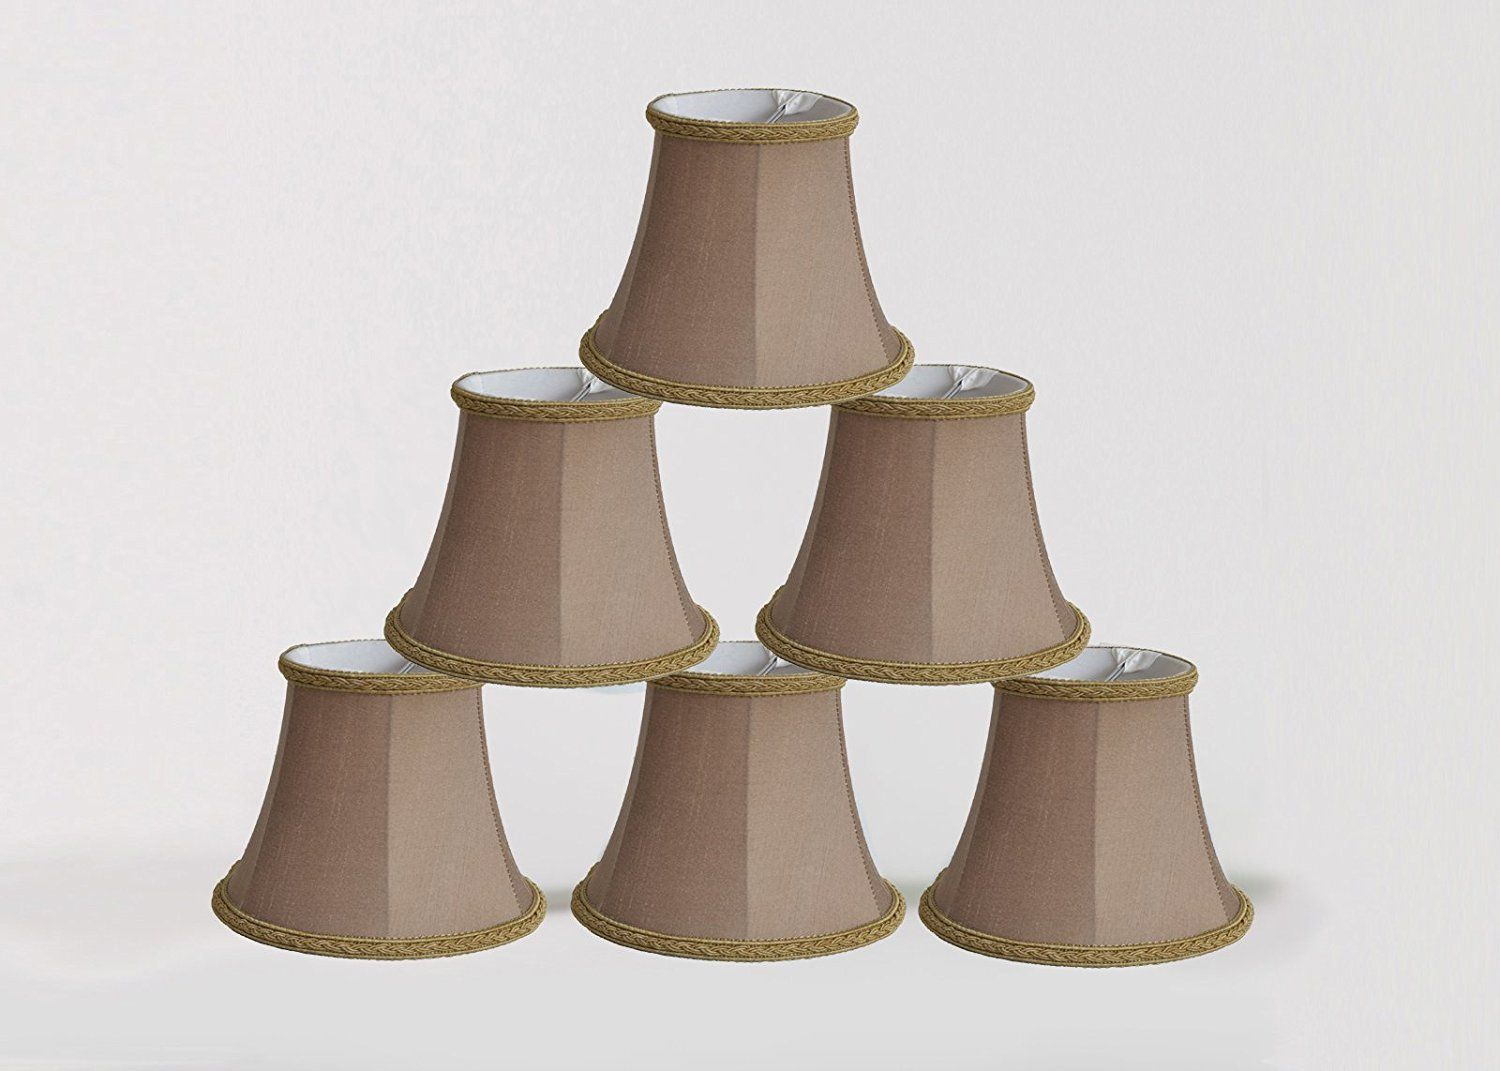 Urbanest 1100468c Set Of 6 Chandelier Mini Lamp Shade 5 Inch Bell Clip On Taupe Visit The Image Link More Details Affiliate Link Small Lamp Shades Lamp Shades Chandelier Shades